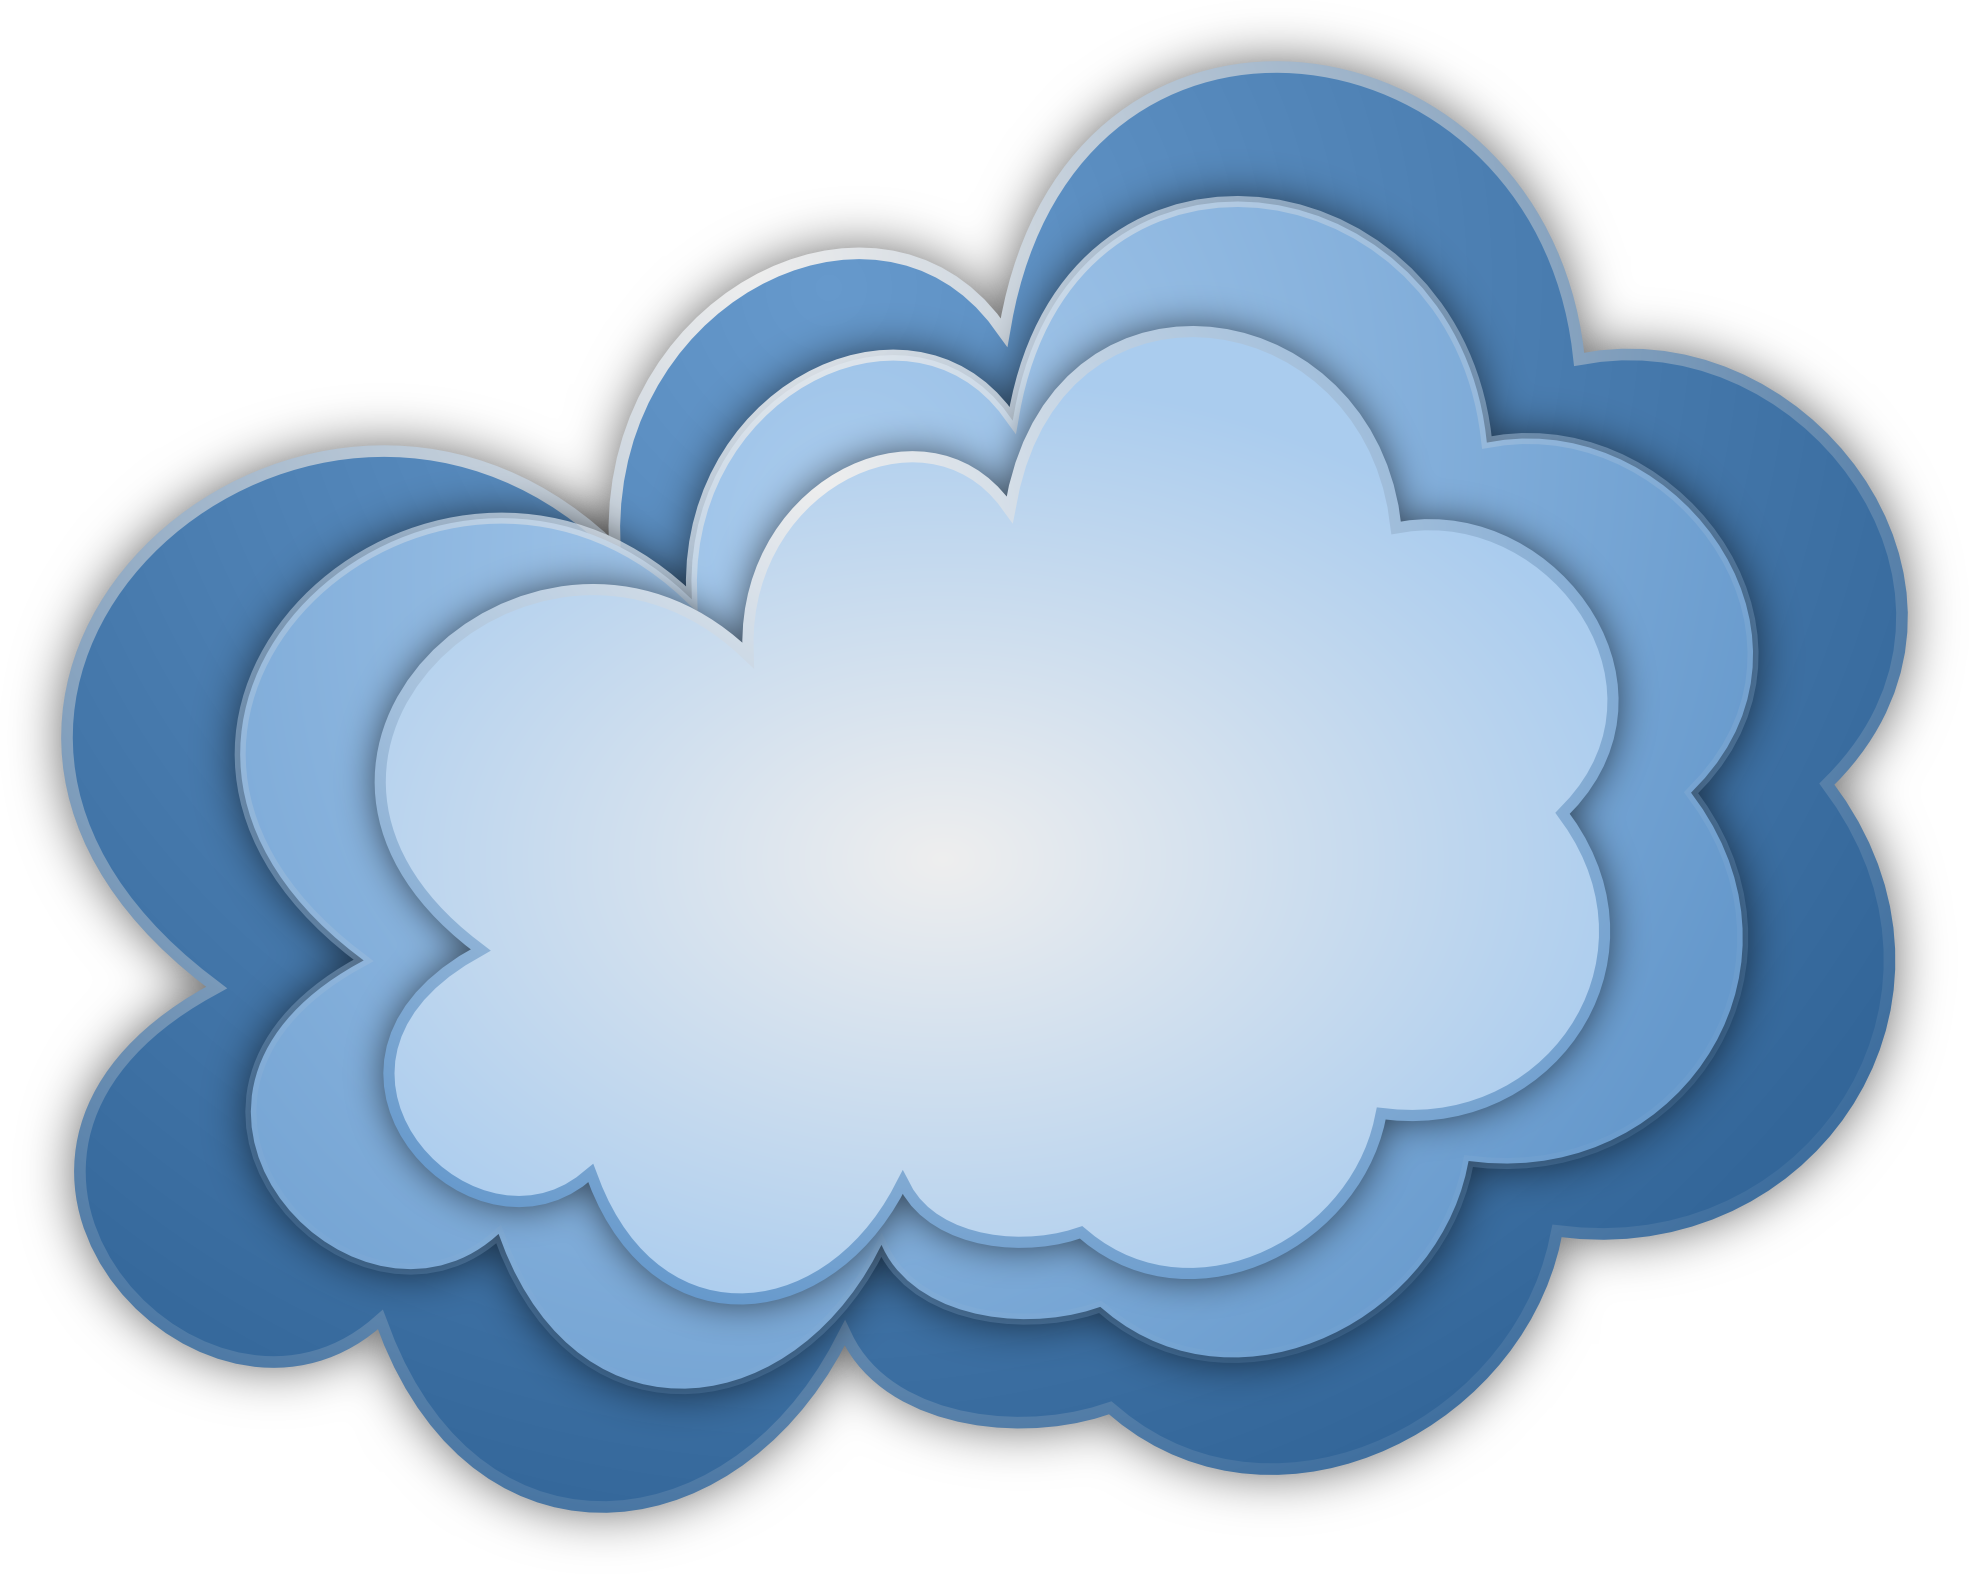 Cloud vector free pesquisa. Outside clipart cloudy sky